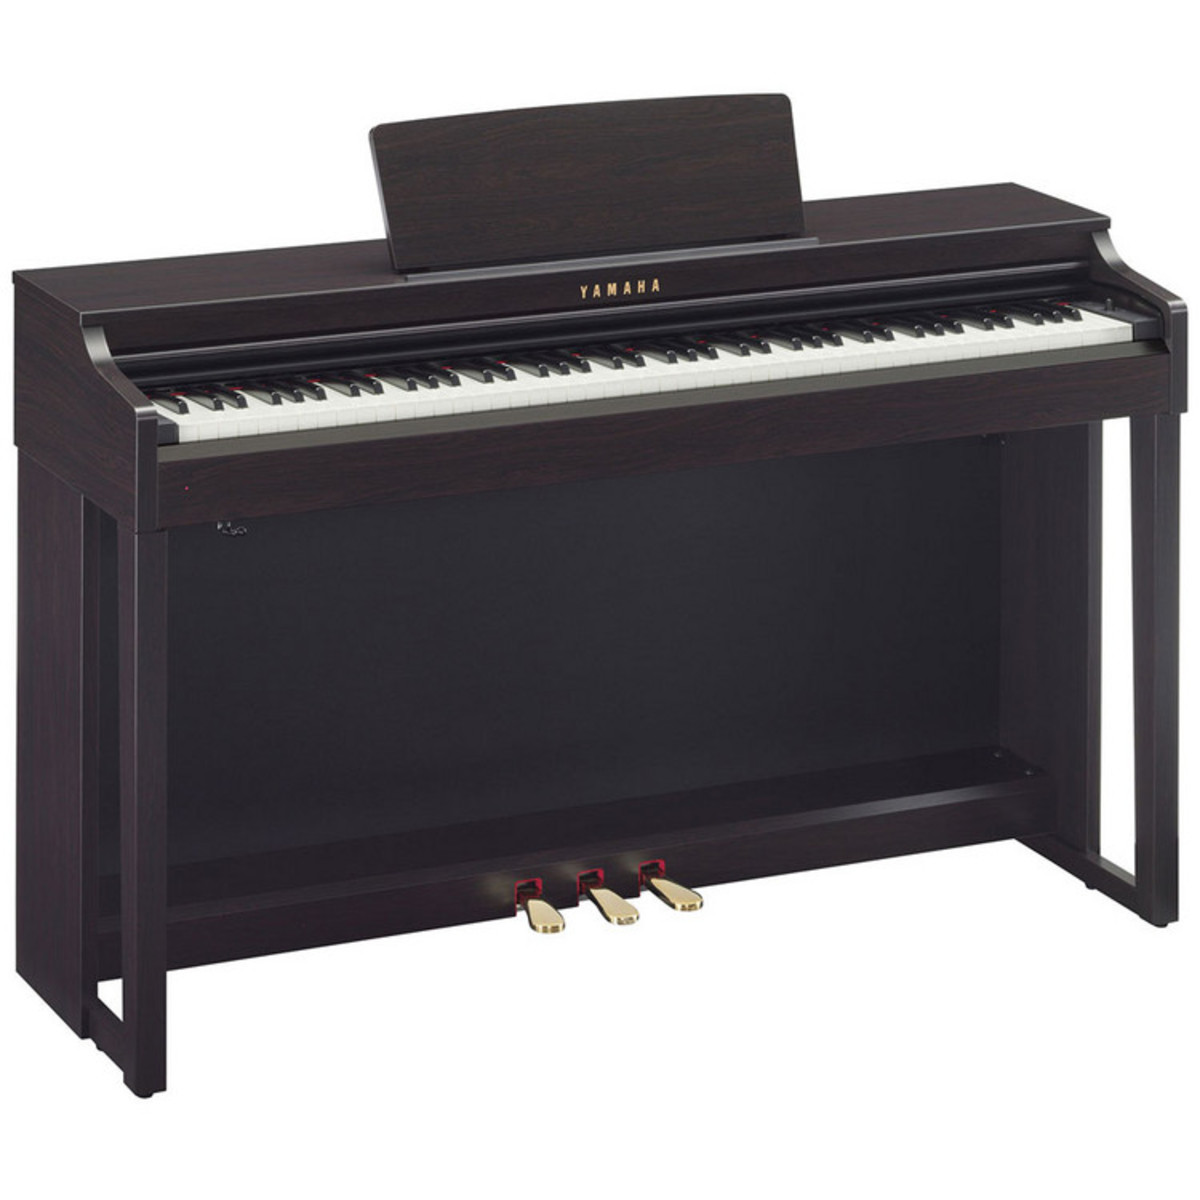 Yamaha clavinova clp525 digital piano rosewood at for Yamaha piano com